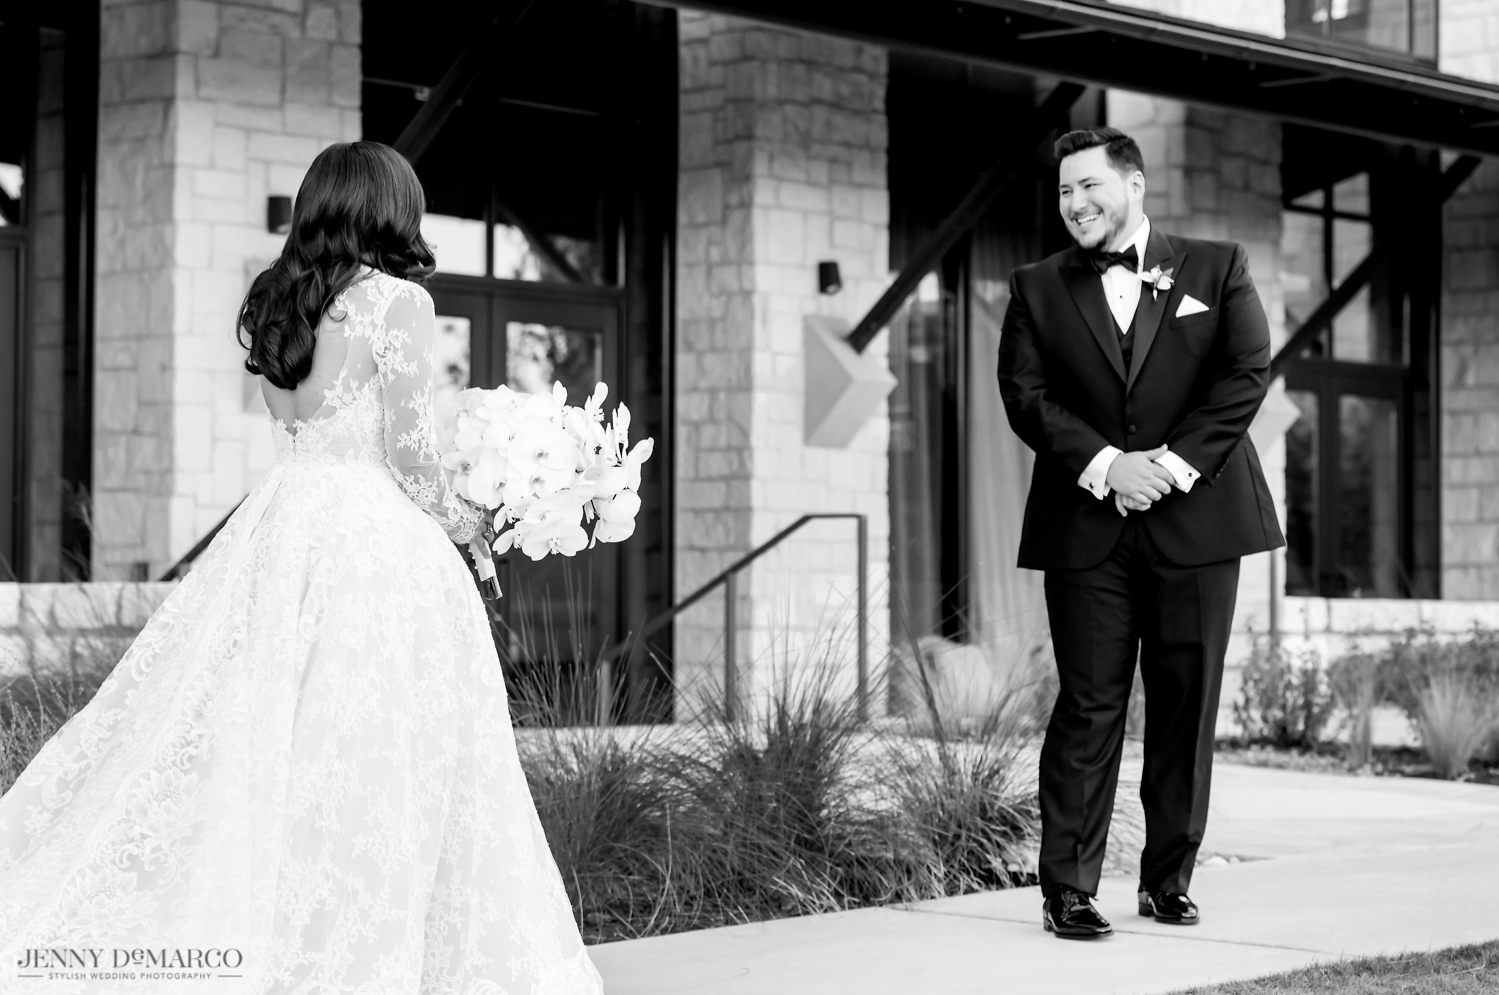 groom seeing the bride for the first time in her wedding dress